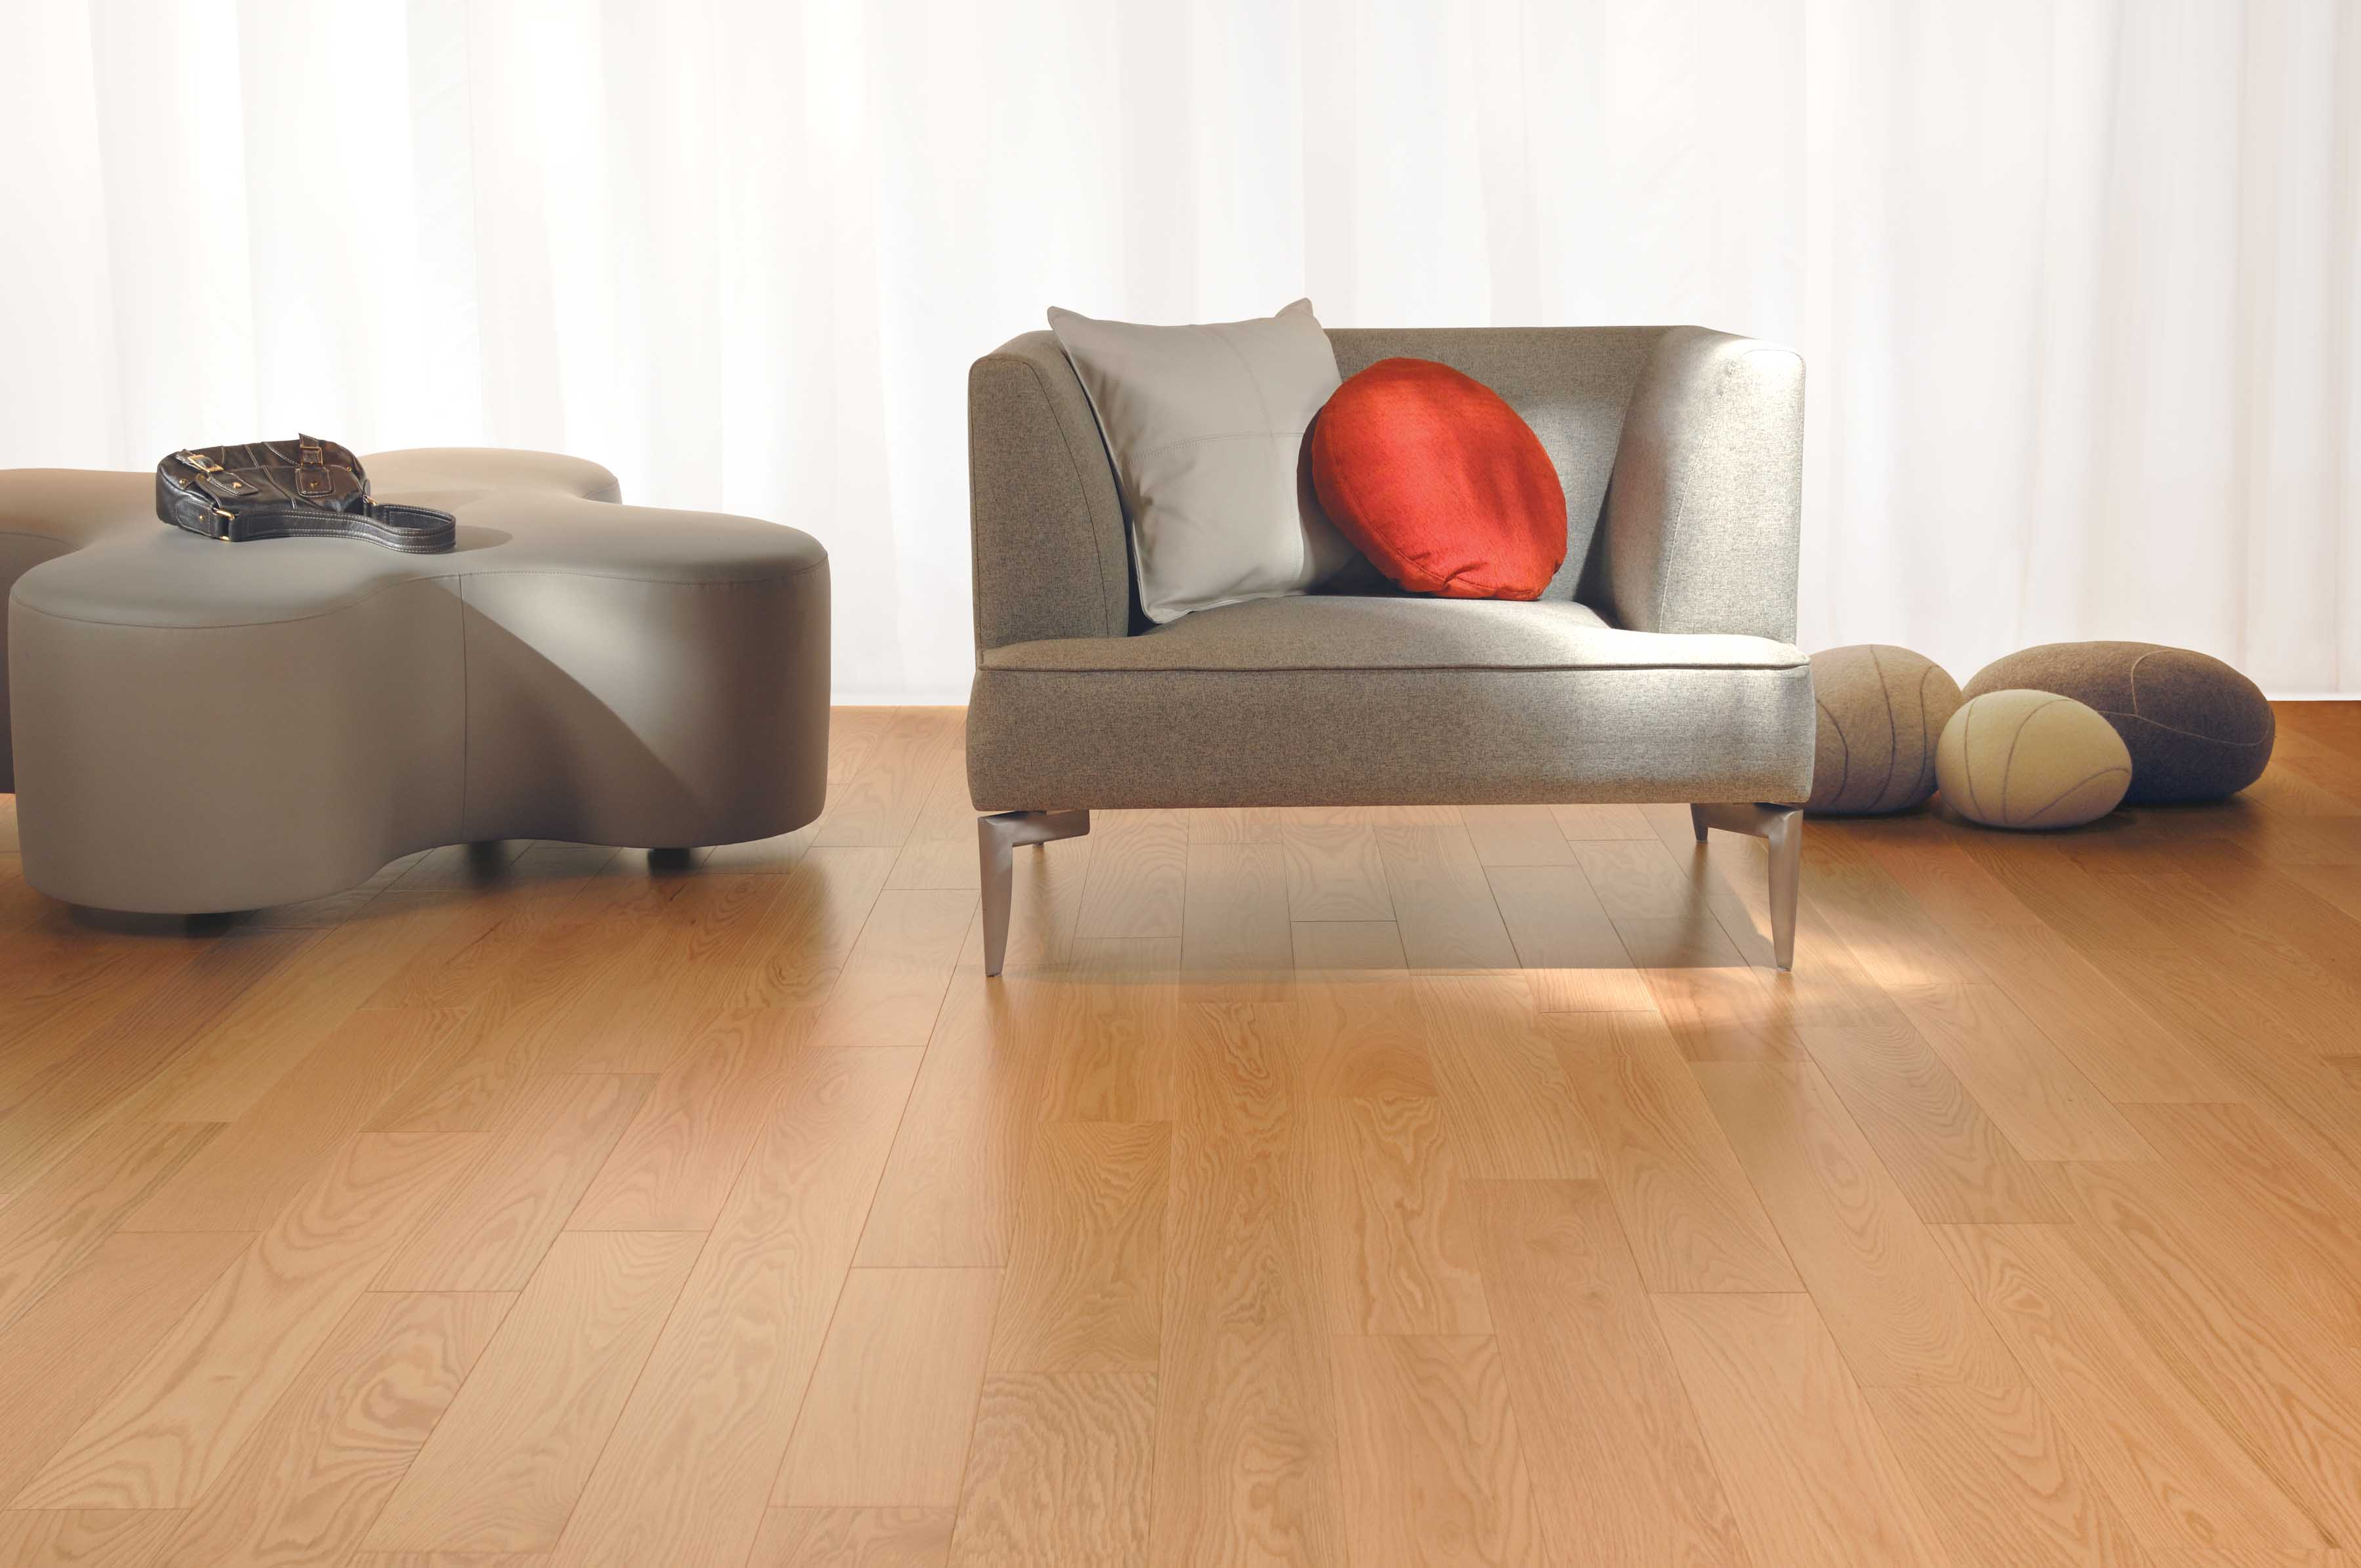 Most Durable Hardwood Floor will Make Your House Appears with Awe ...